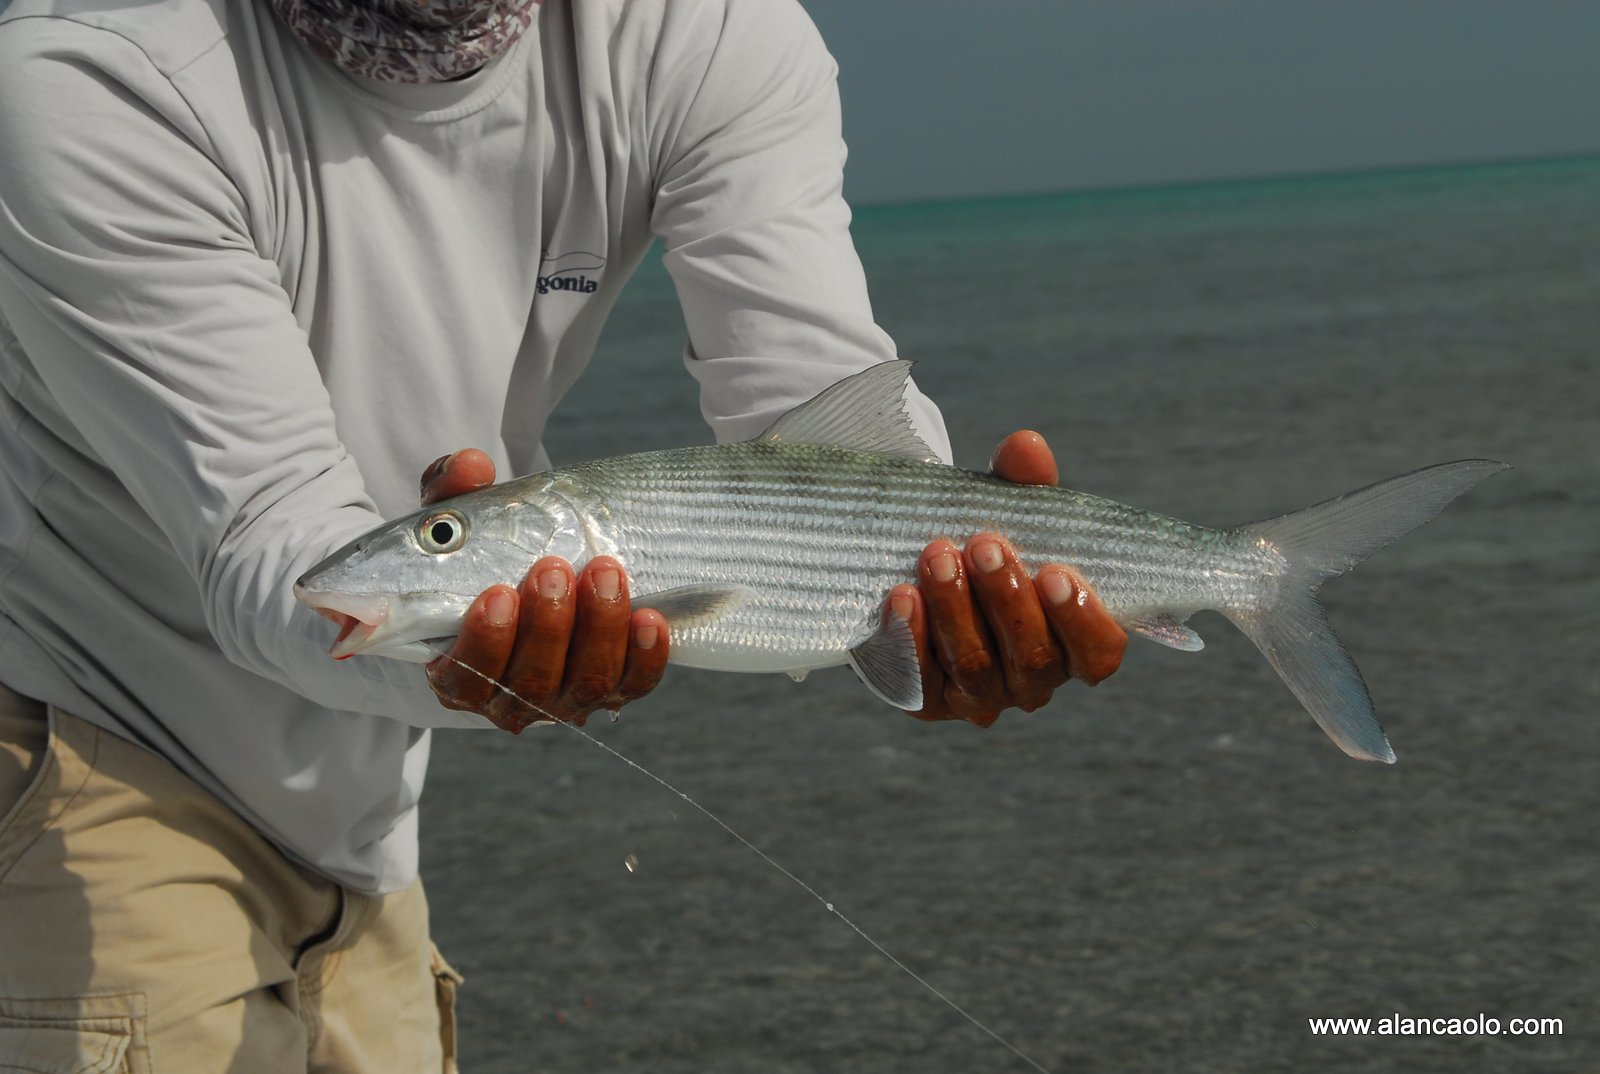 fly fishing photography ©2020 alan caolo - image